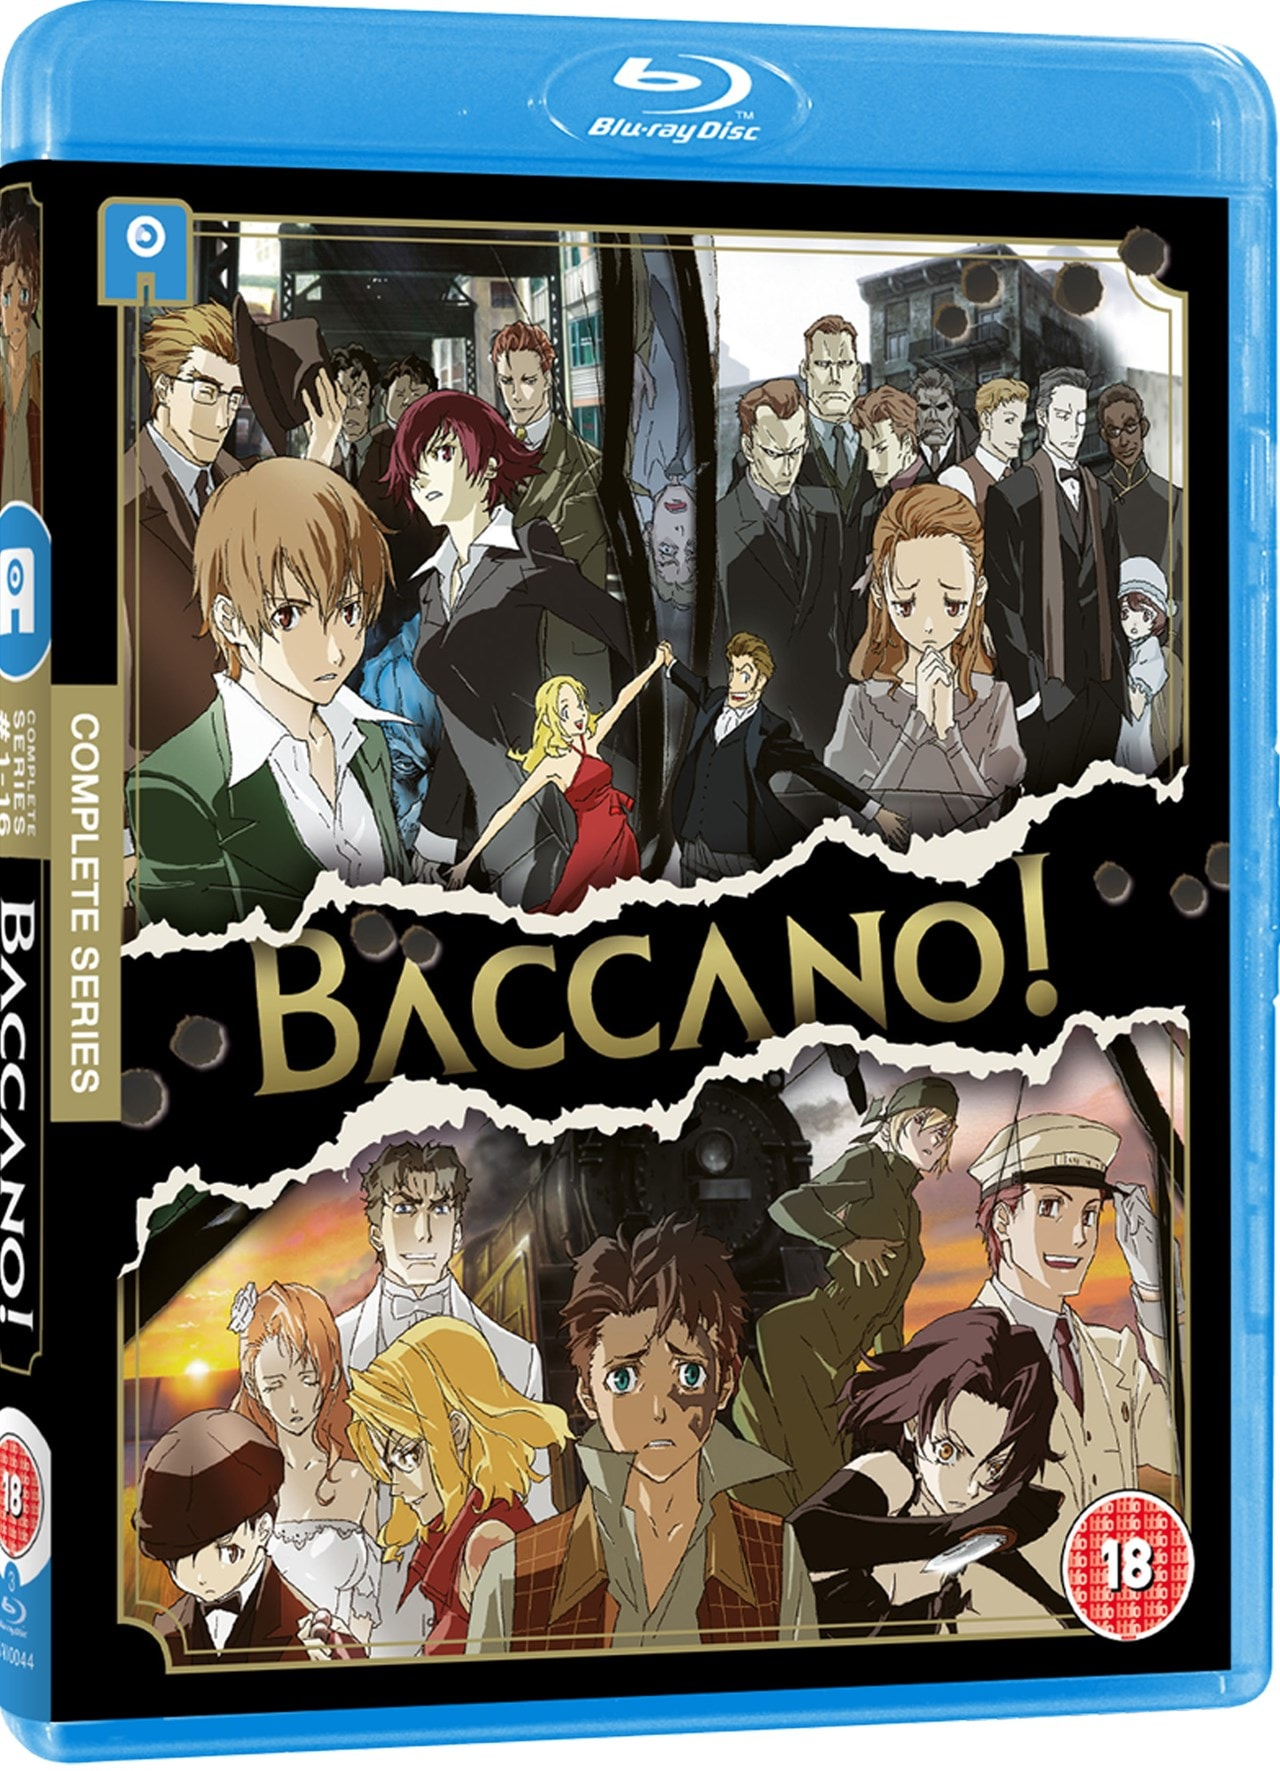 Baccano!: The Complete Collection - 1